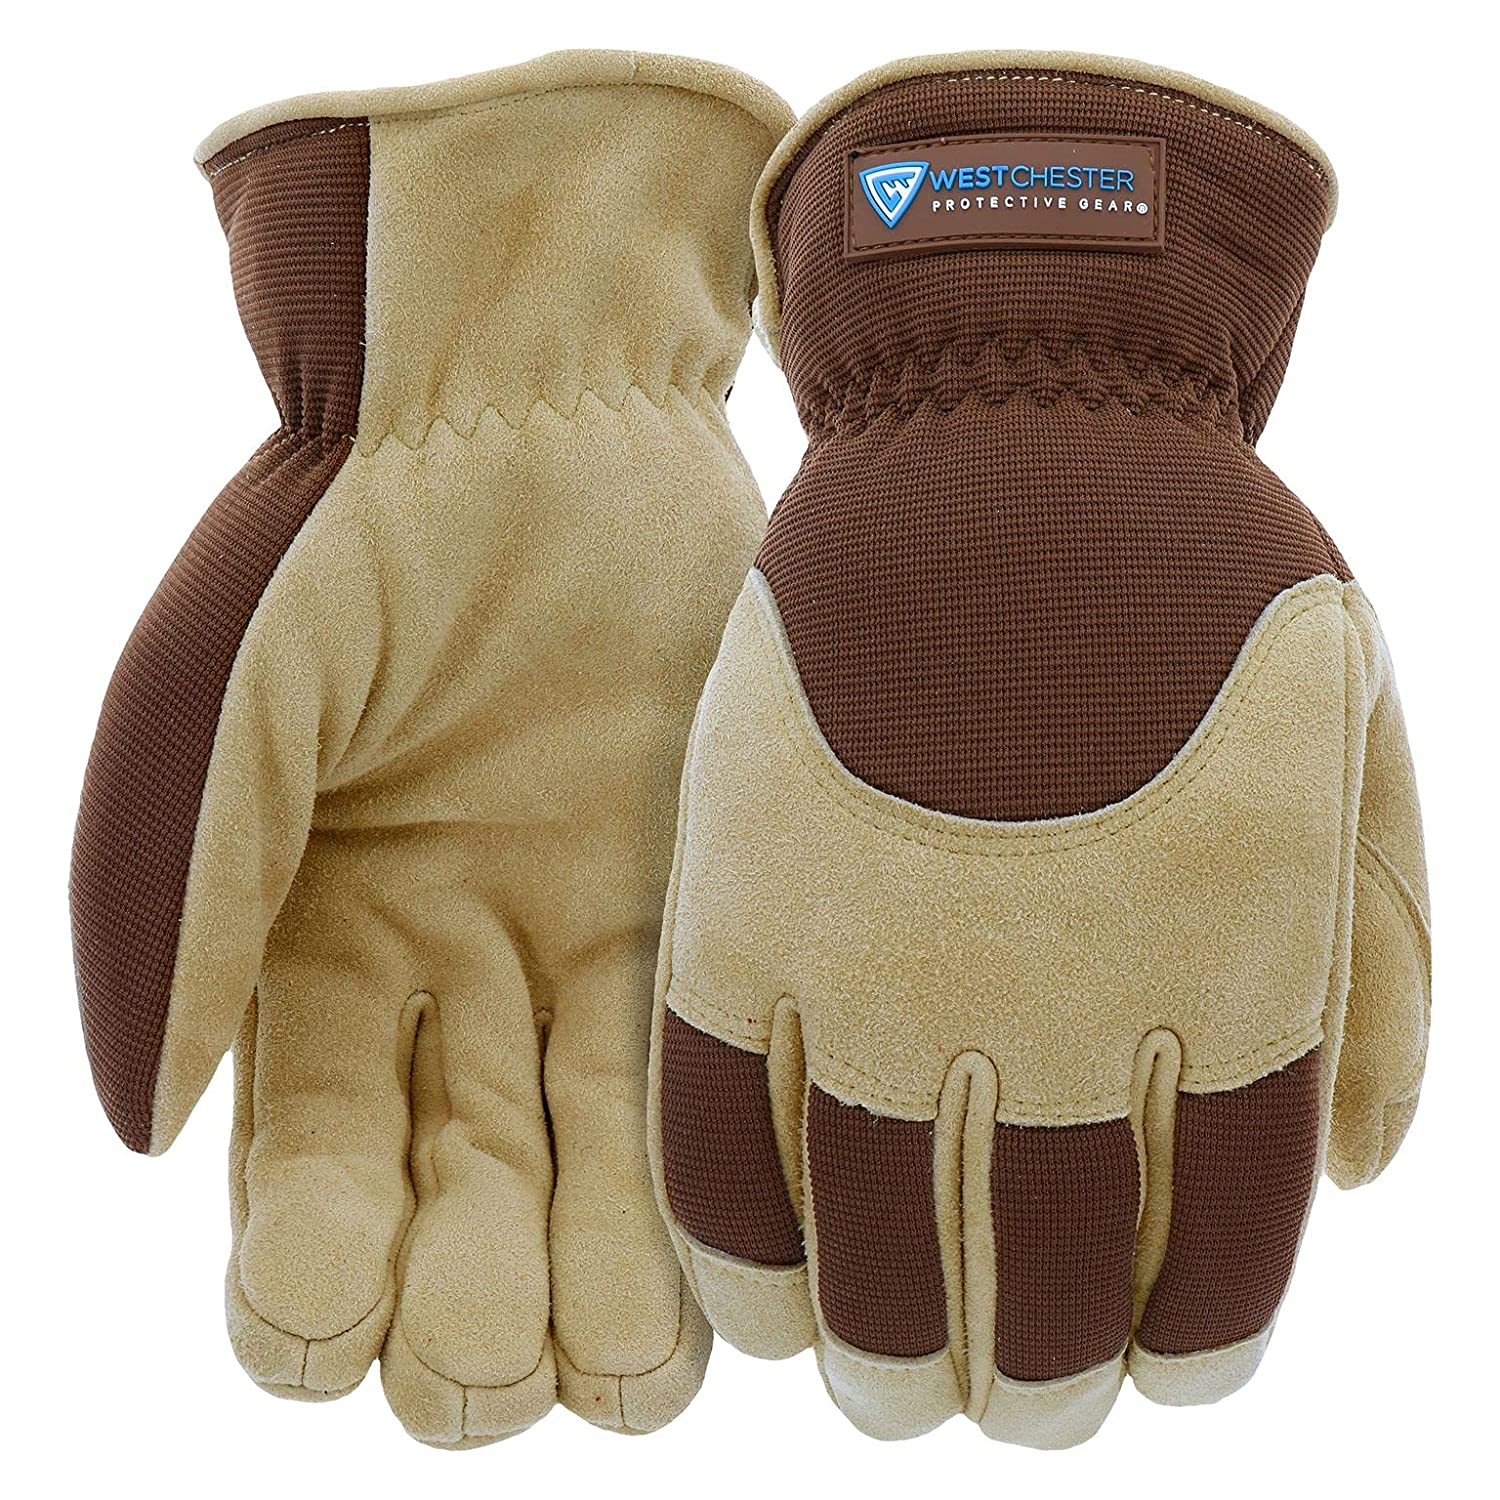 West Chester Deerskin Split-Leather Palm Men's Work Gloves, Thinsulate Lining, Winter Gloves, Tan/Brown, X- Large, (91510-XL)